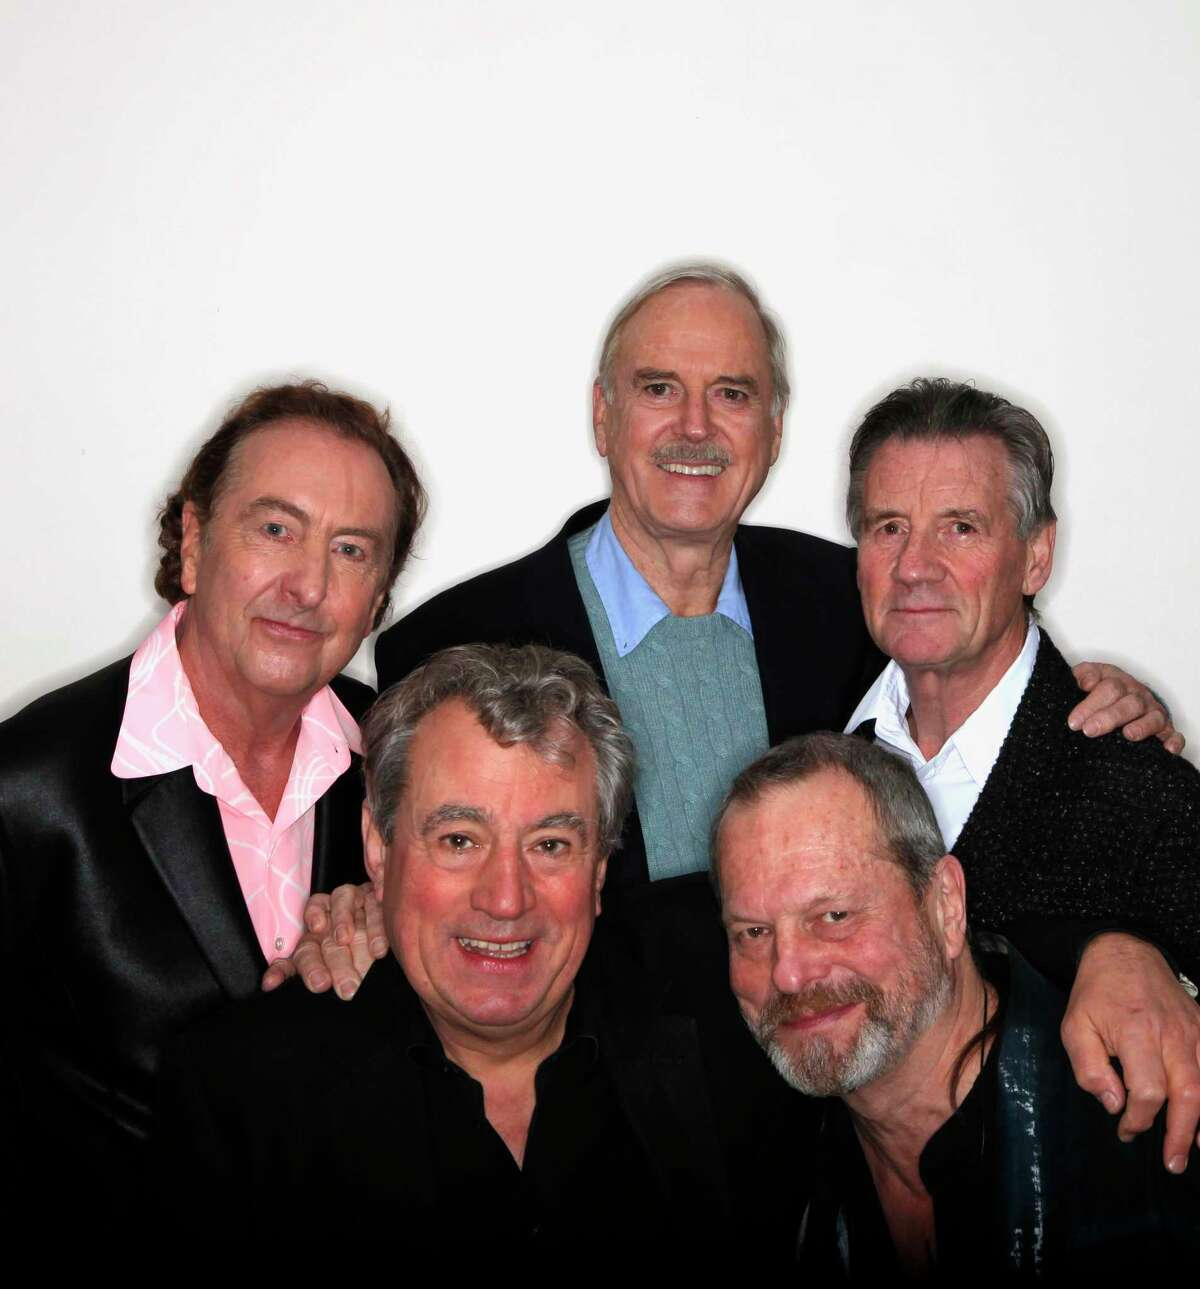 FILE - Monty Python members, from left: Eric Idle, Terry Jones, John Cleese, Terry Gilliam and Michael Palin in New York on Oct. 15, 2009. Jones, who earned a spot in comedic lore as a member of the British troupe Monty Python and also had success as a director, screenwriter and author, died on Tuesday night, Jan. 21, 2020, according to his ex-wife, Alison Telfer. He was 77. (Damon Winter/The New York Times)